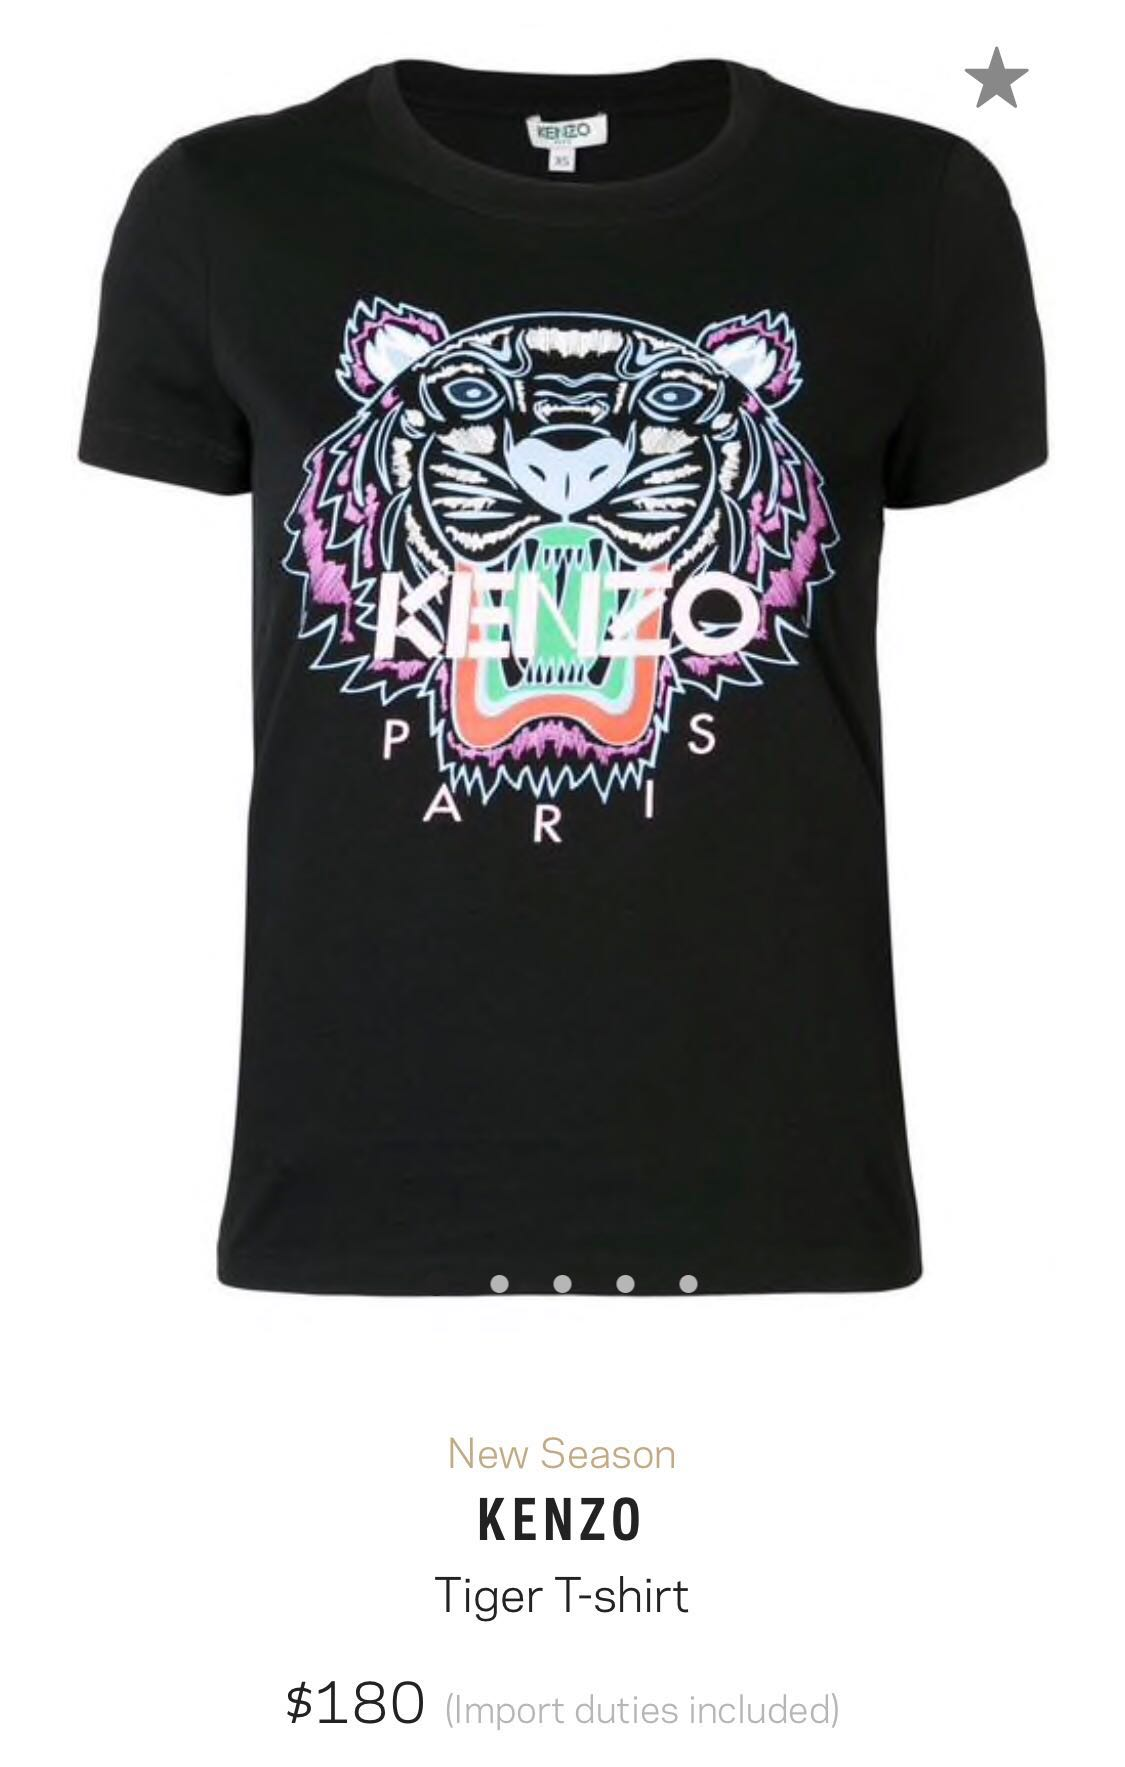 cffc147c151 Kenzo Women Tiger T-shirt, Women's Fashion, Clothes, Tops on Carousell